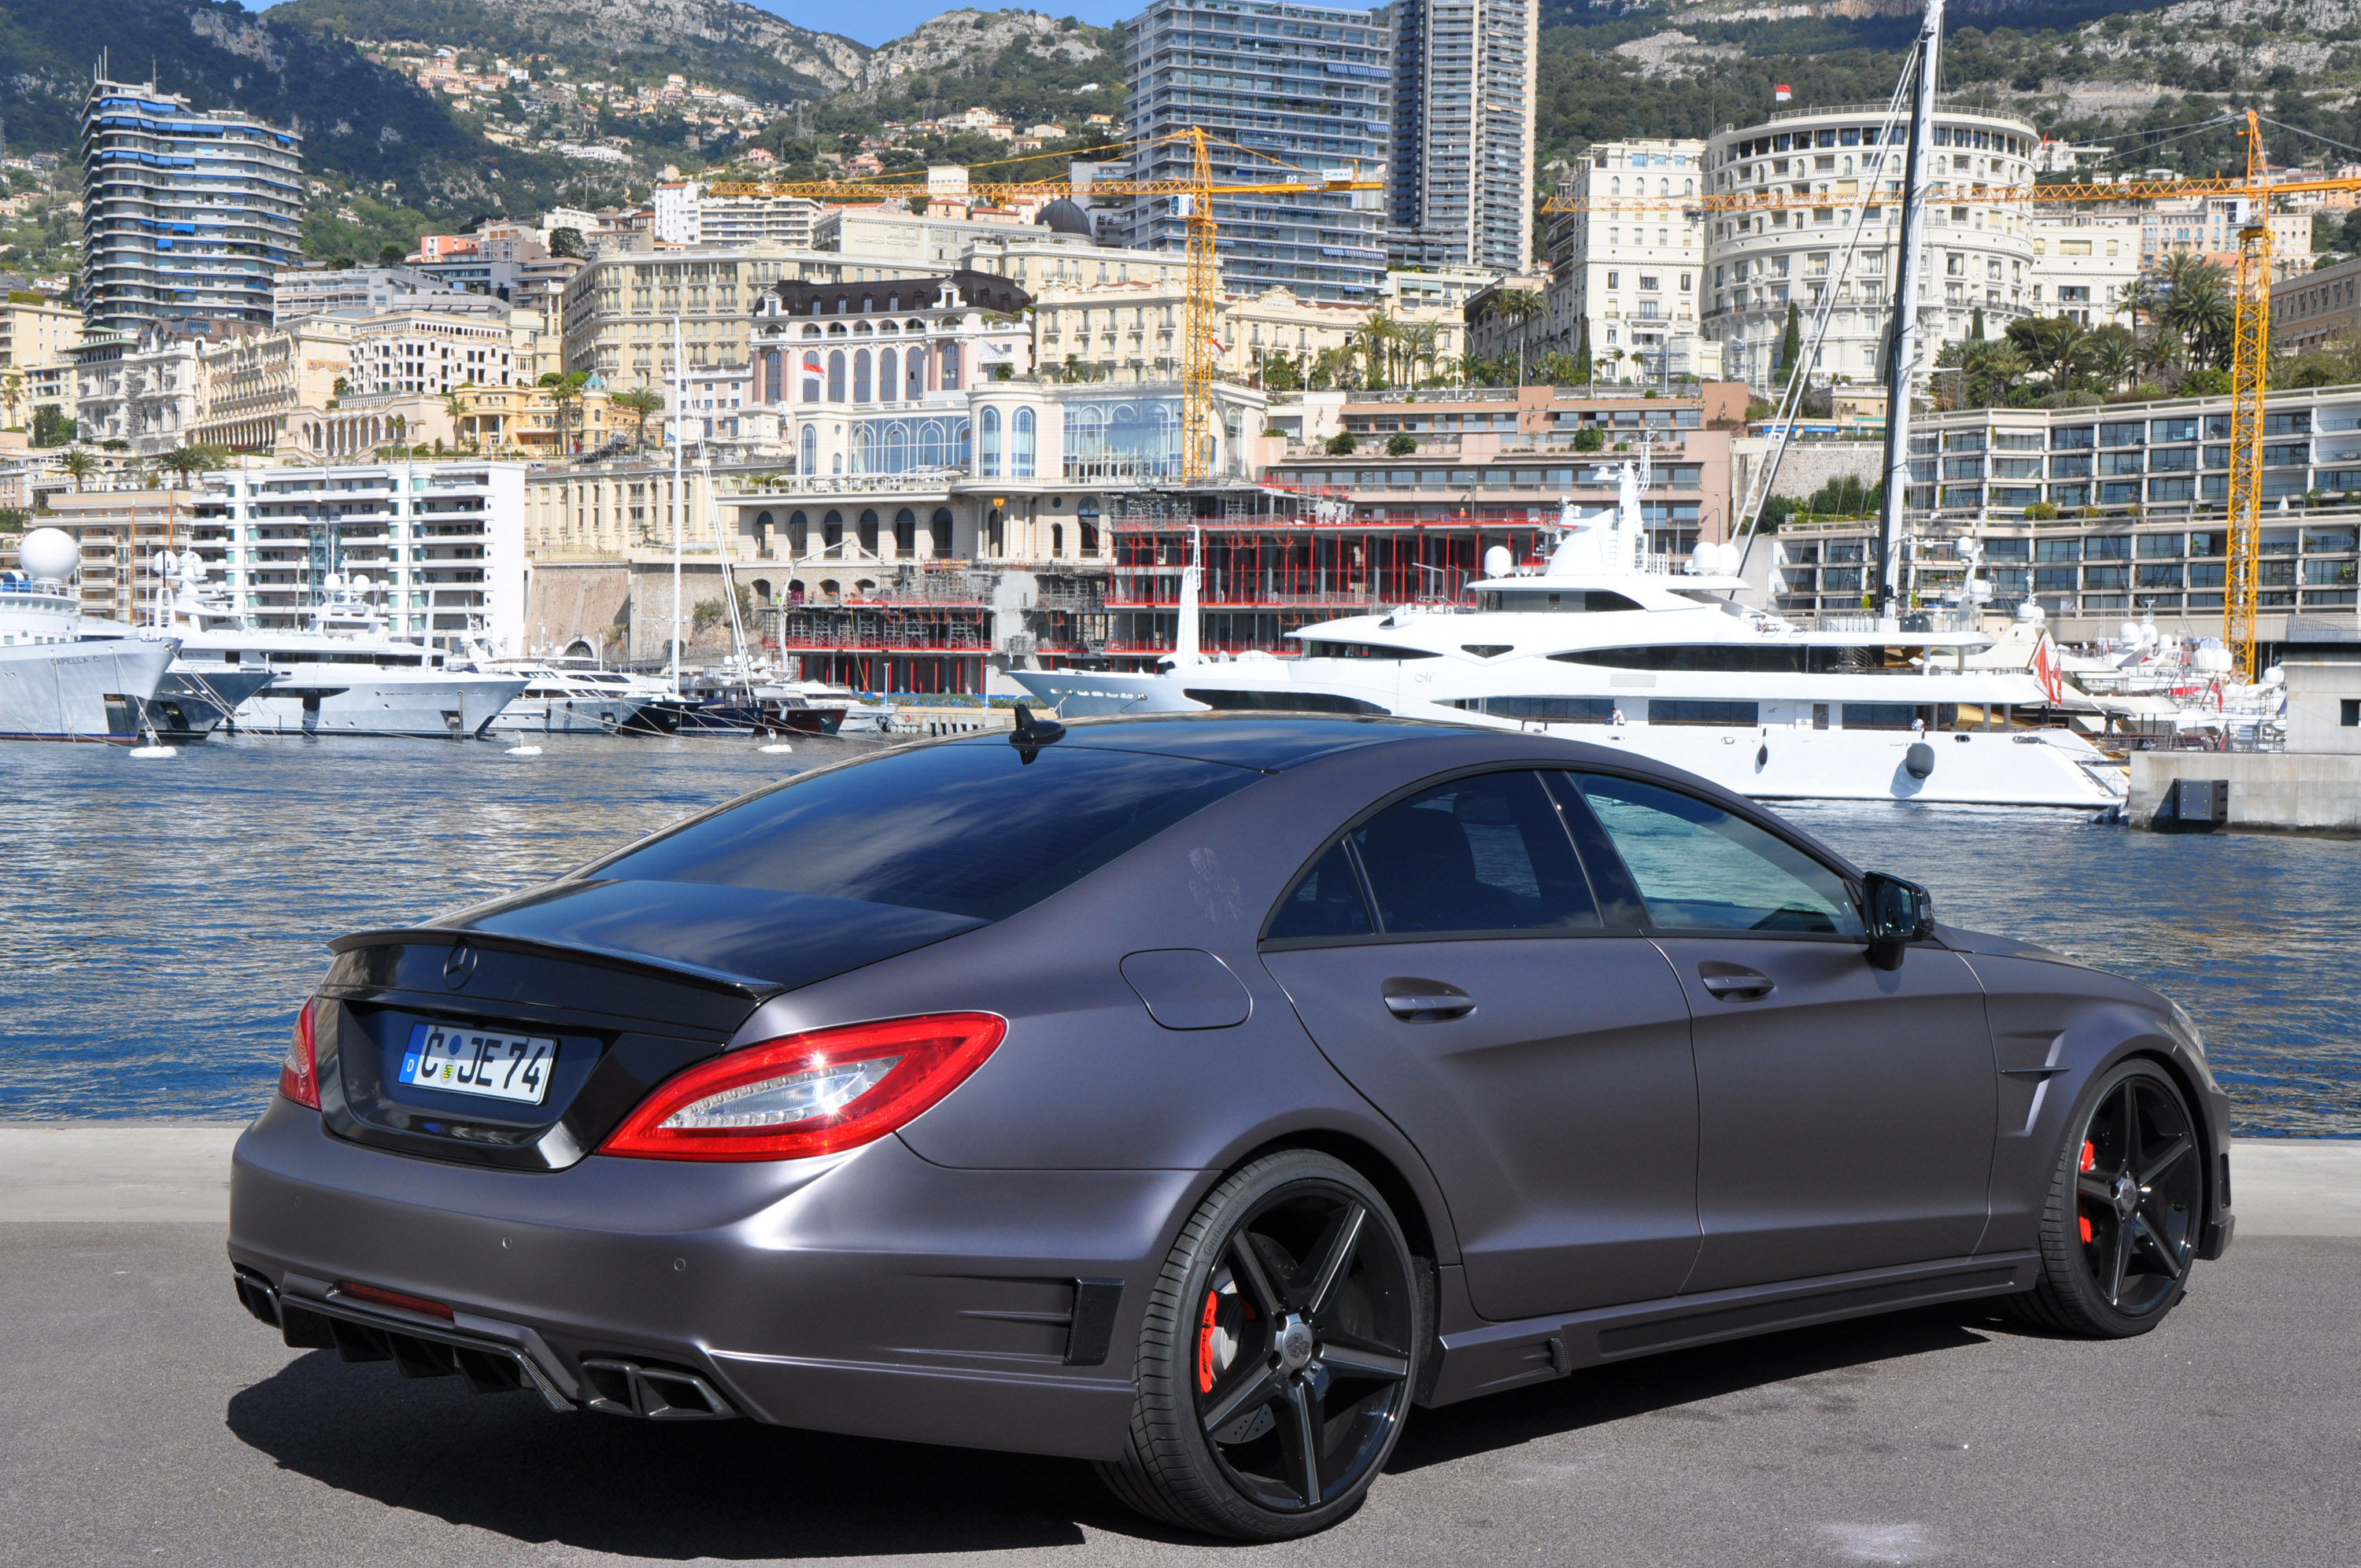 Mercedes benz cls 63 amg photos 8 on better parts ltd for Looking for mercedes benz parts